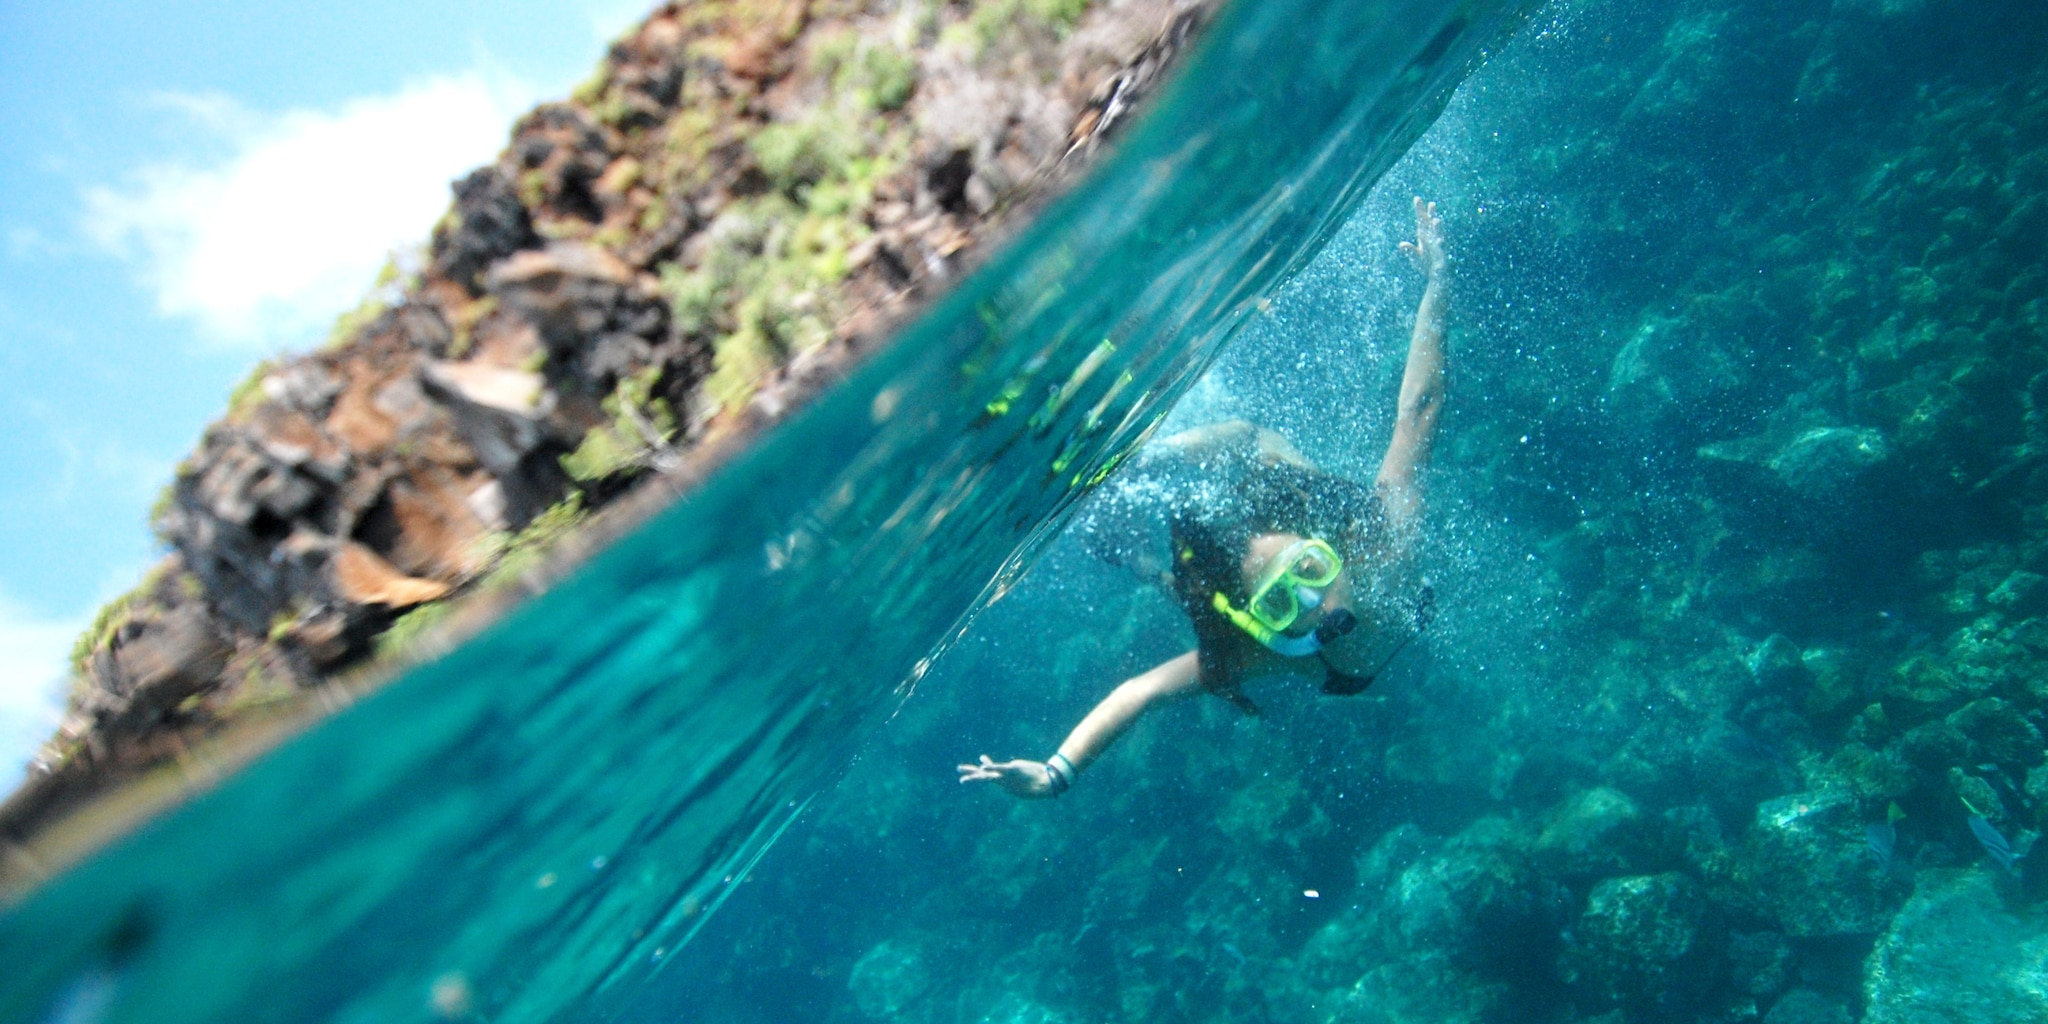 A girl is snorkeling under water